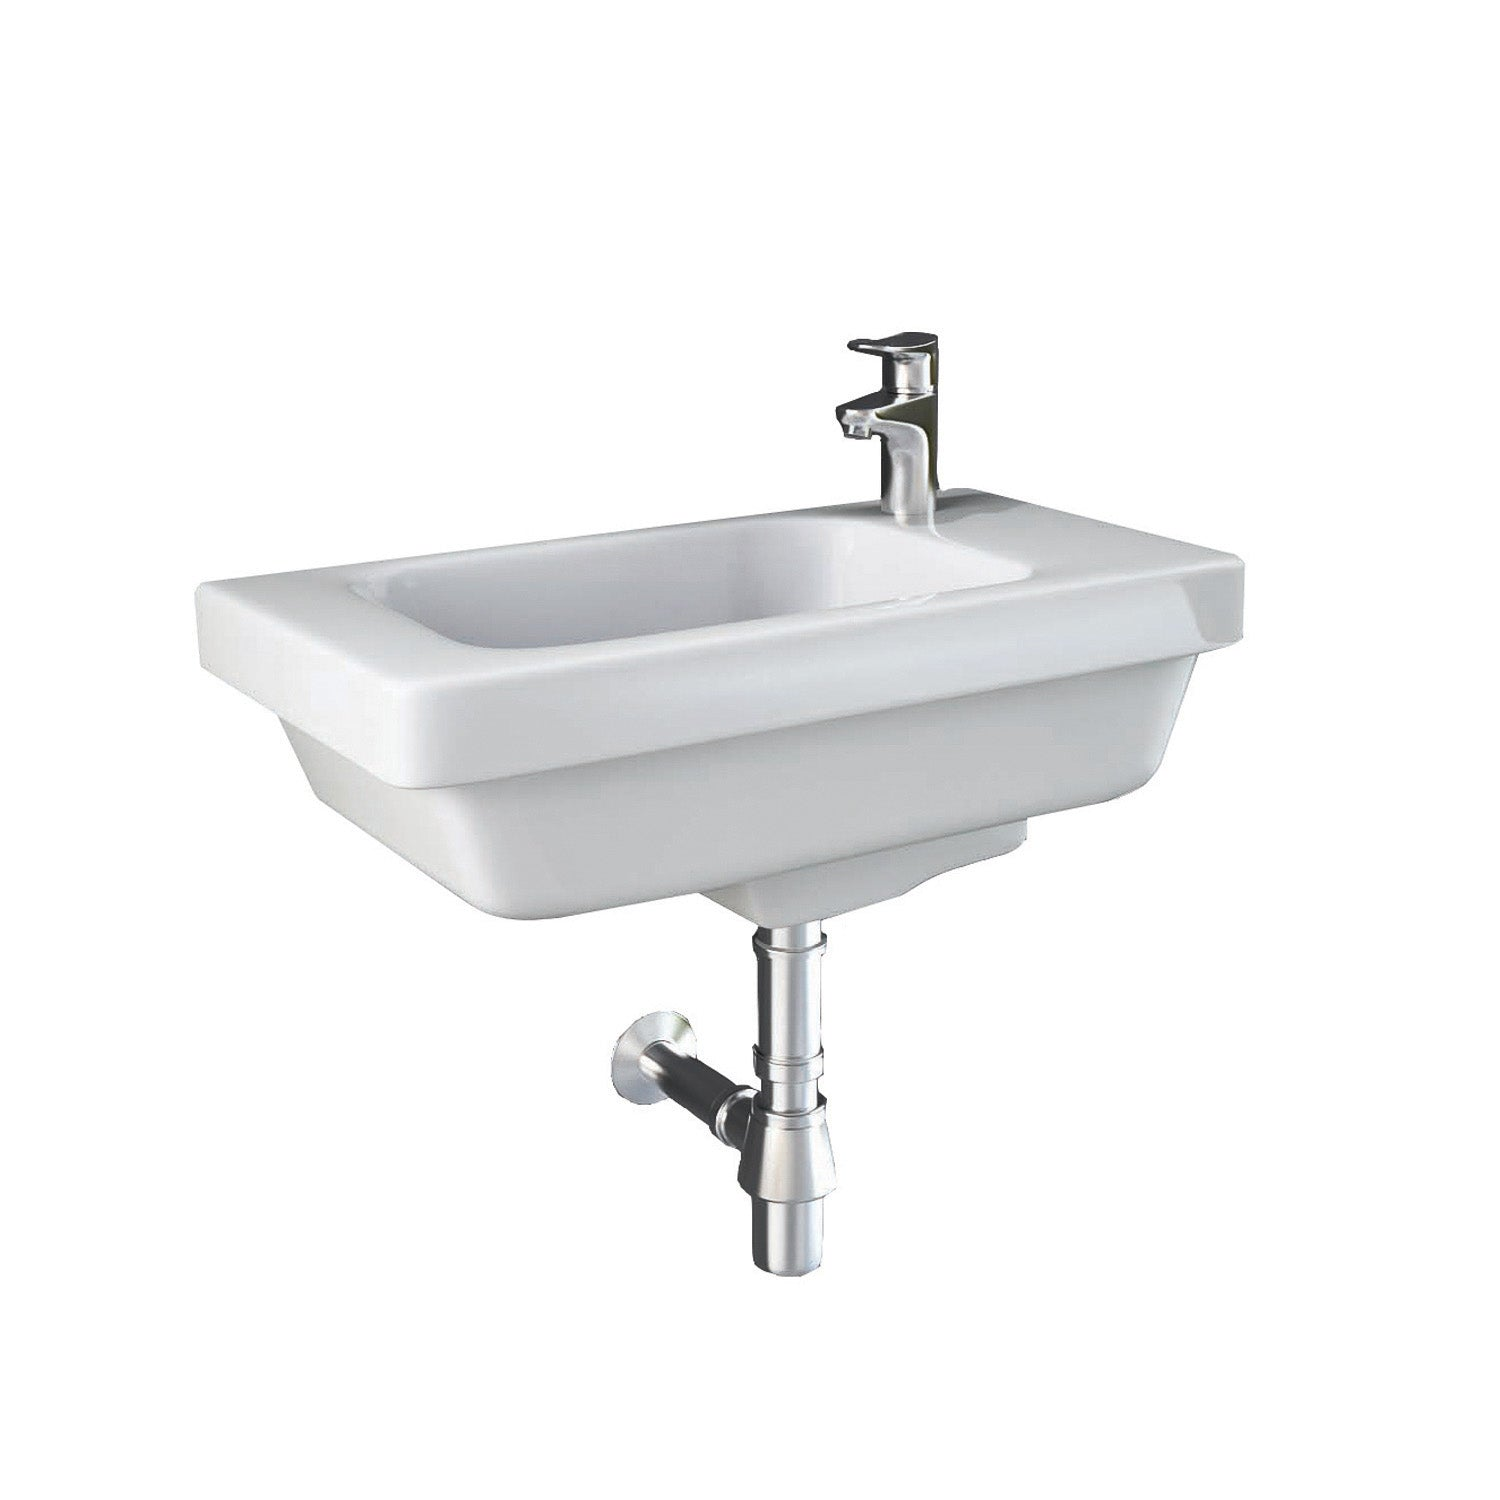 Vesta Cloakroom Handrinse Basin with one tap hole and an overflow on a white background